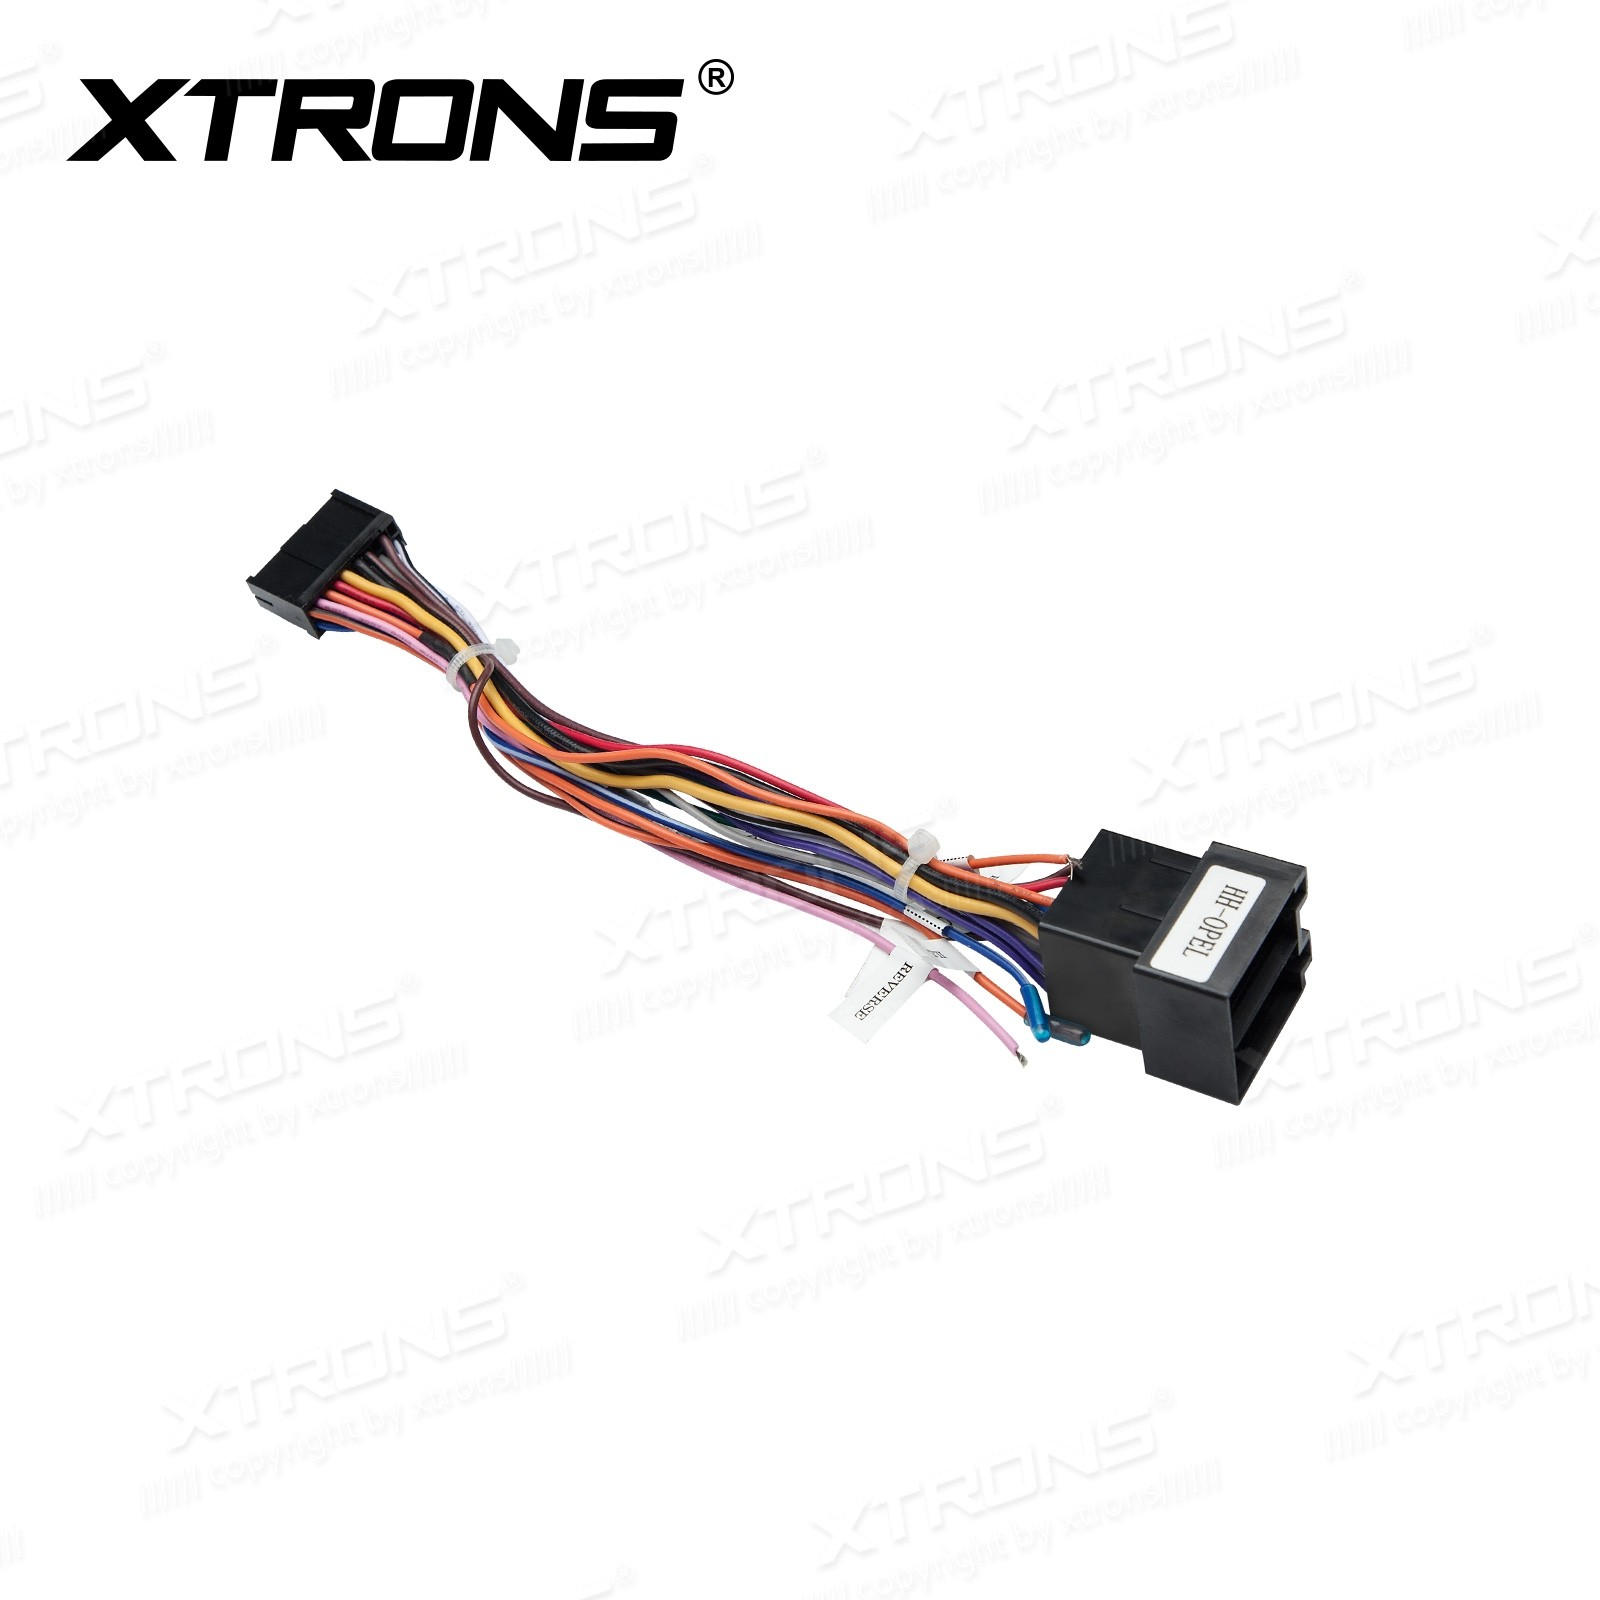 ISO Adapter for the Installation of XTRONS Opel Custom Fit Series in Opel Vehicles